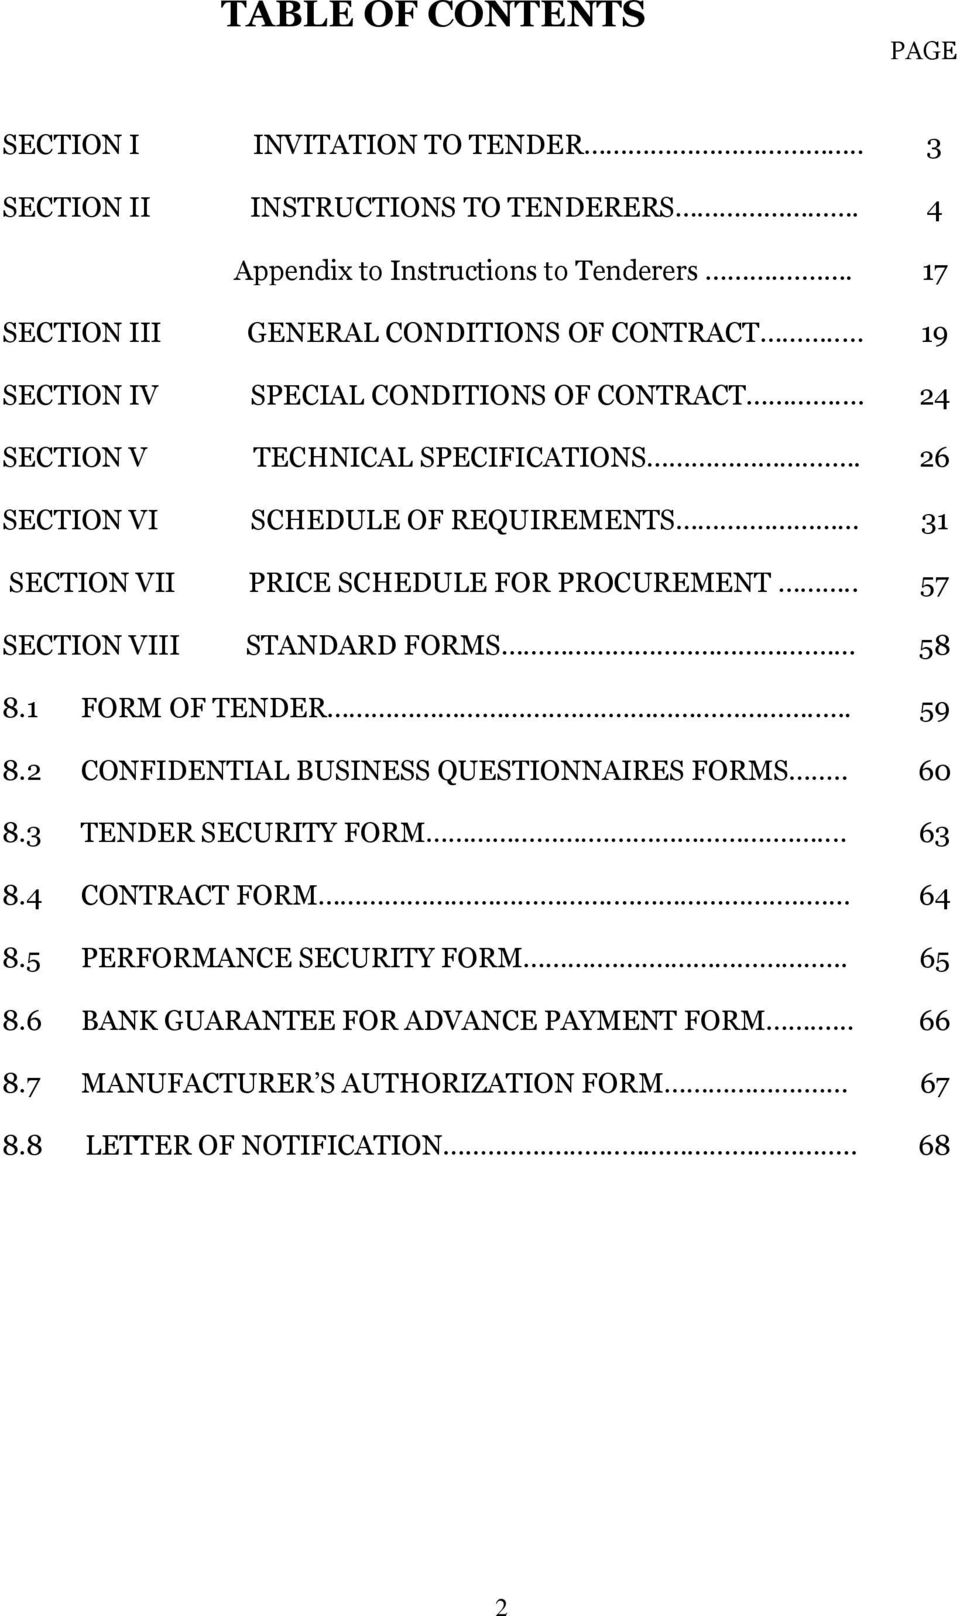 31 SECTION VII PRICE SCHEDULE FOR PROCUREMENT.. 57 SECTION VIII STANDARD FORMS... 58 8.1 FORM OF TENDER..... 59 8.2 CONFIDENTIAL BUSINESS QUESTIONNAIRES FORMS.. 60 8.